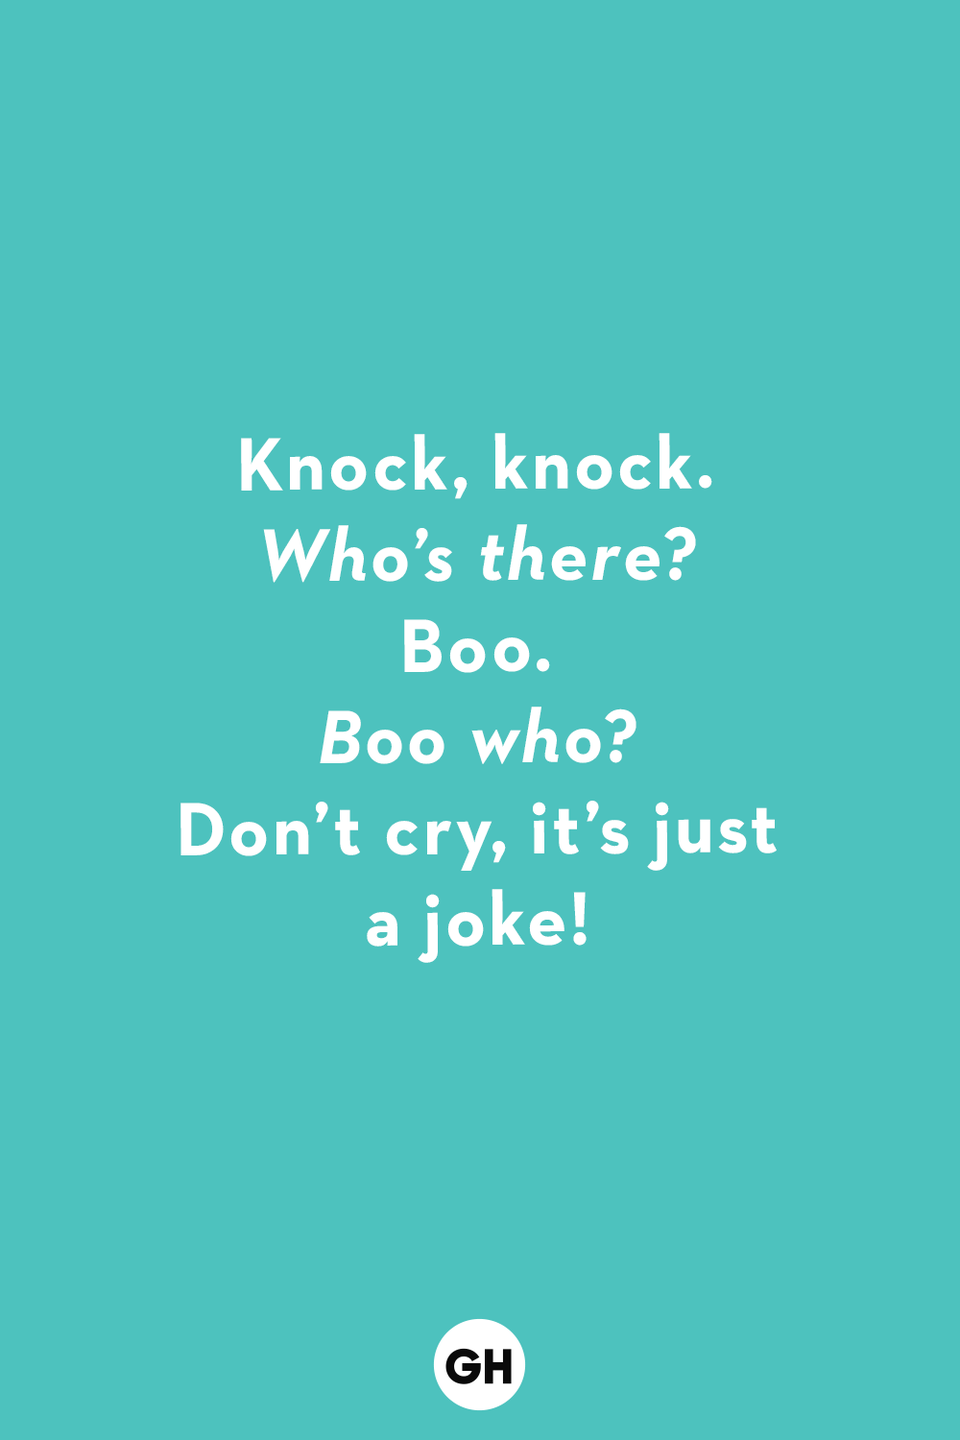 <p><em>Who's there?</em></p><p>Boo.</p><p><em>Boo who?</em></p><p>Don't cry, it's just a joke!</p>